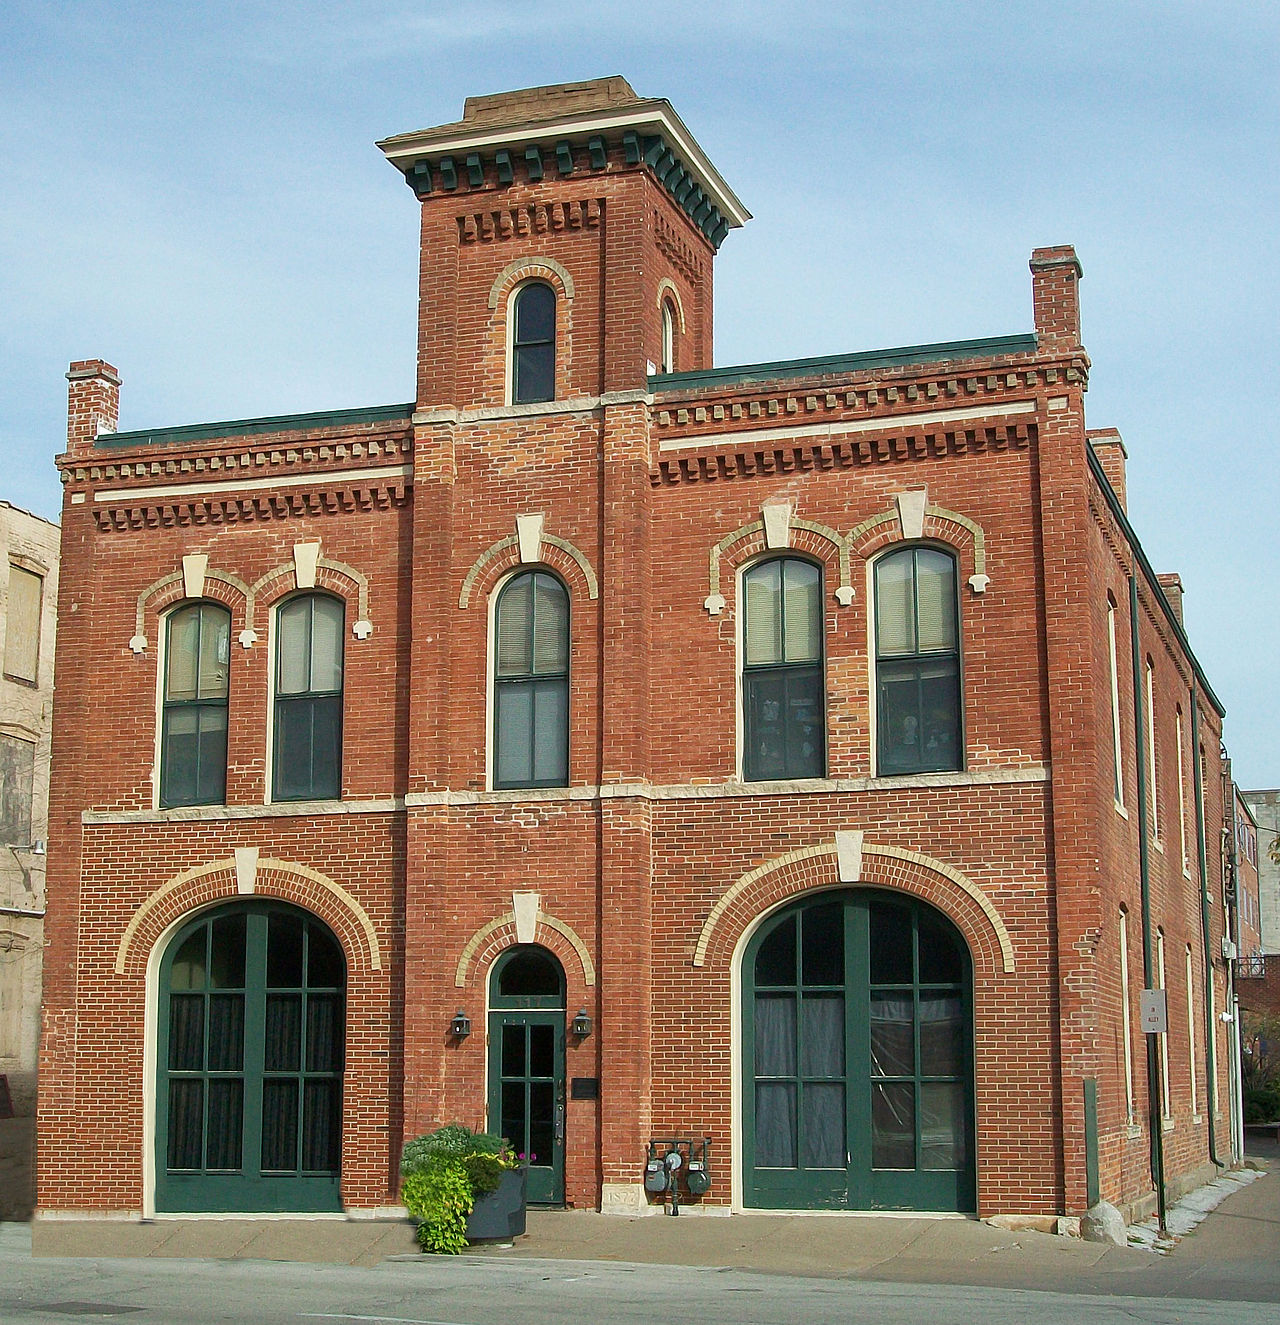 Hose Station No. 1 was built in 1877.